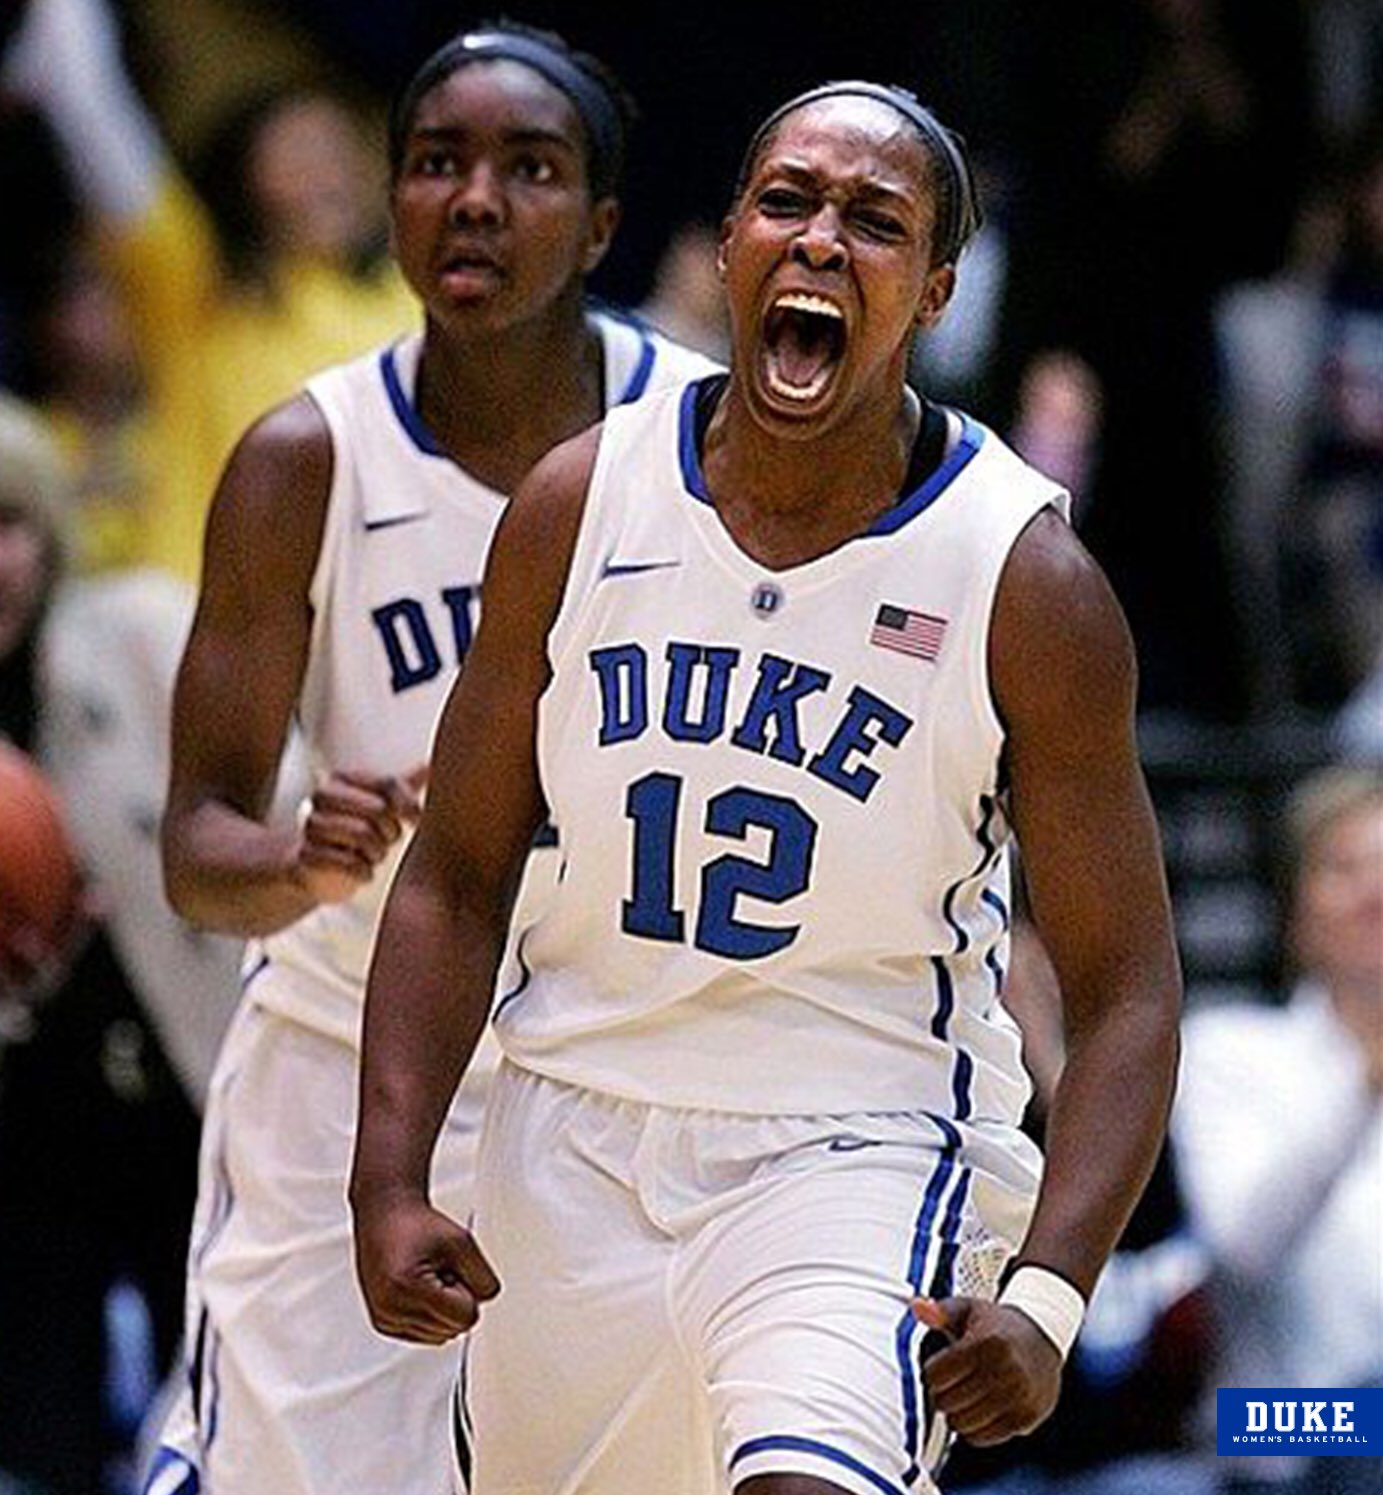 Happy Birthday to ACC & @WNBA champ @cgray209! ��  ������������ https://t.co/VUKBzc32ZM